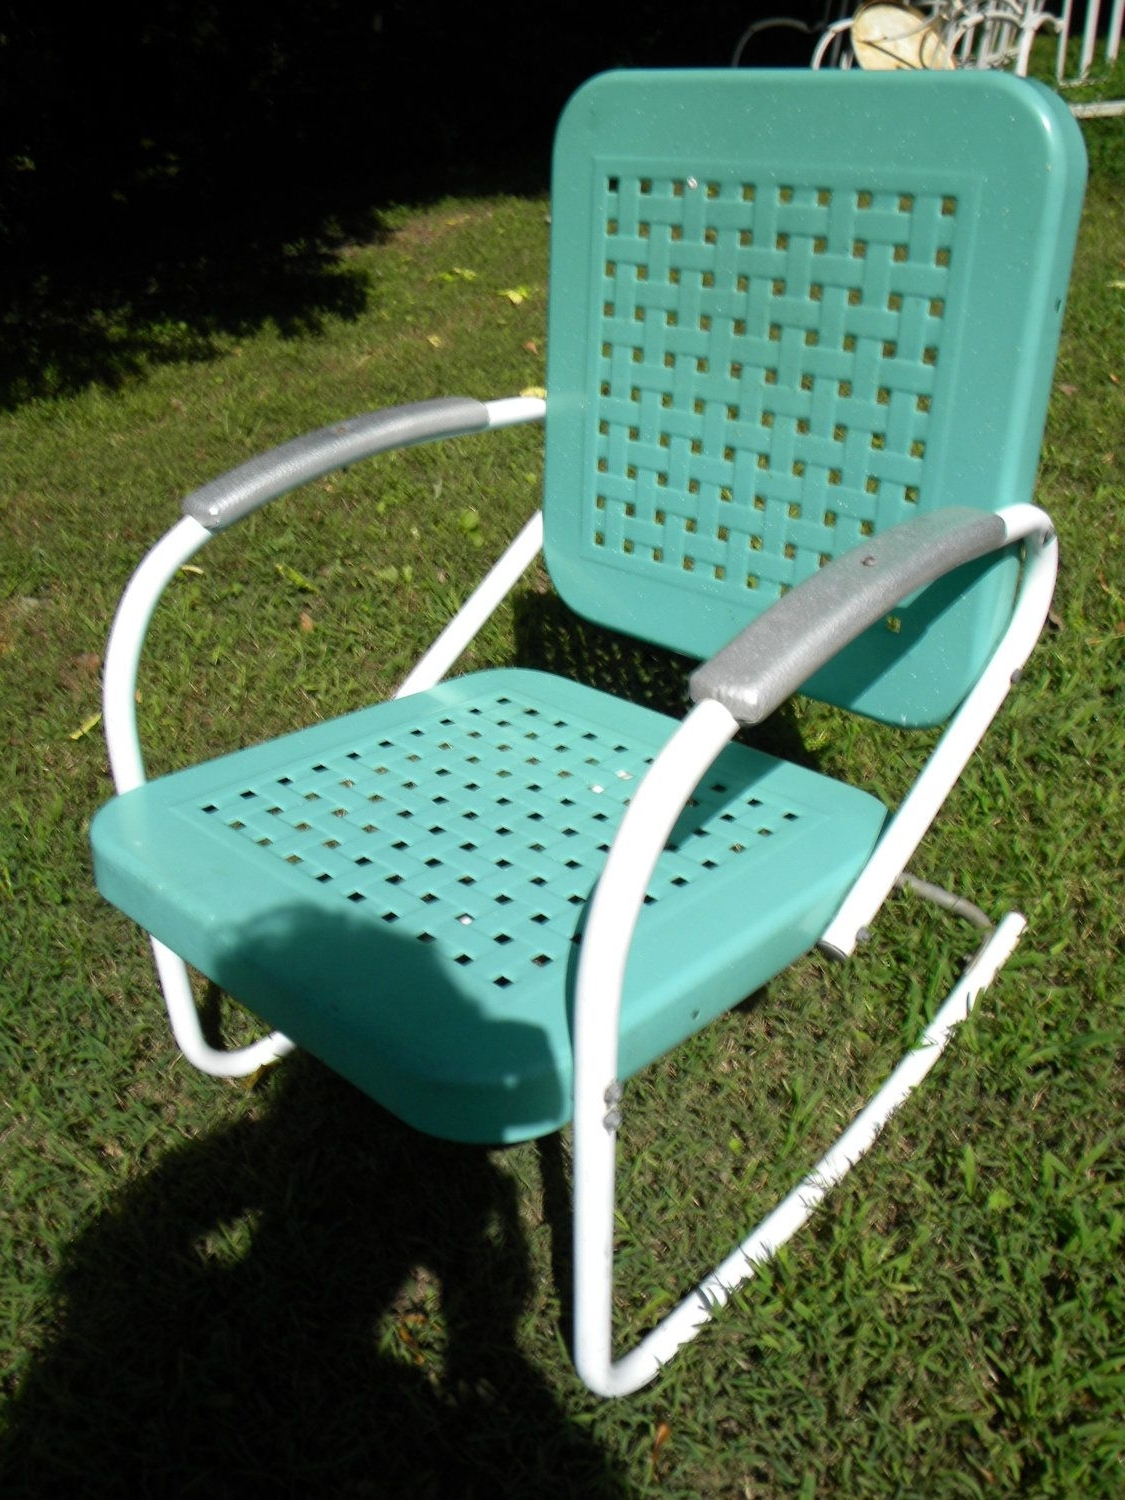 Retro Outdoor Rocking Chairs Inside Most Up To Date Vtg 50S 60S Retro Outdoor Metal Lawn Patio Porch Rocking Chair (View 14 of 20)